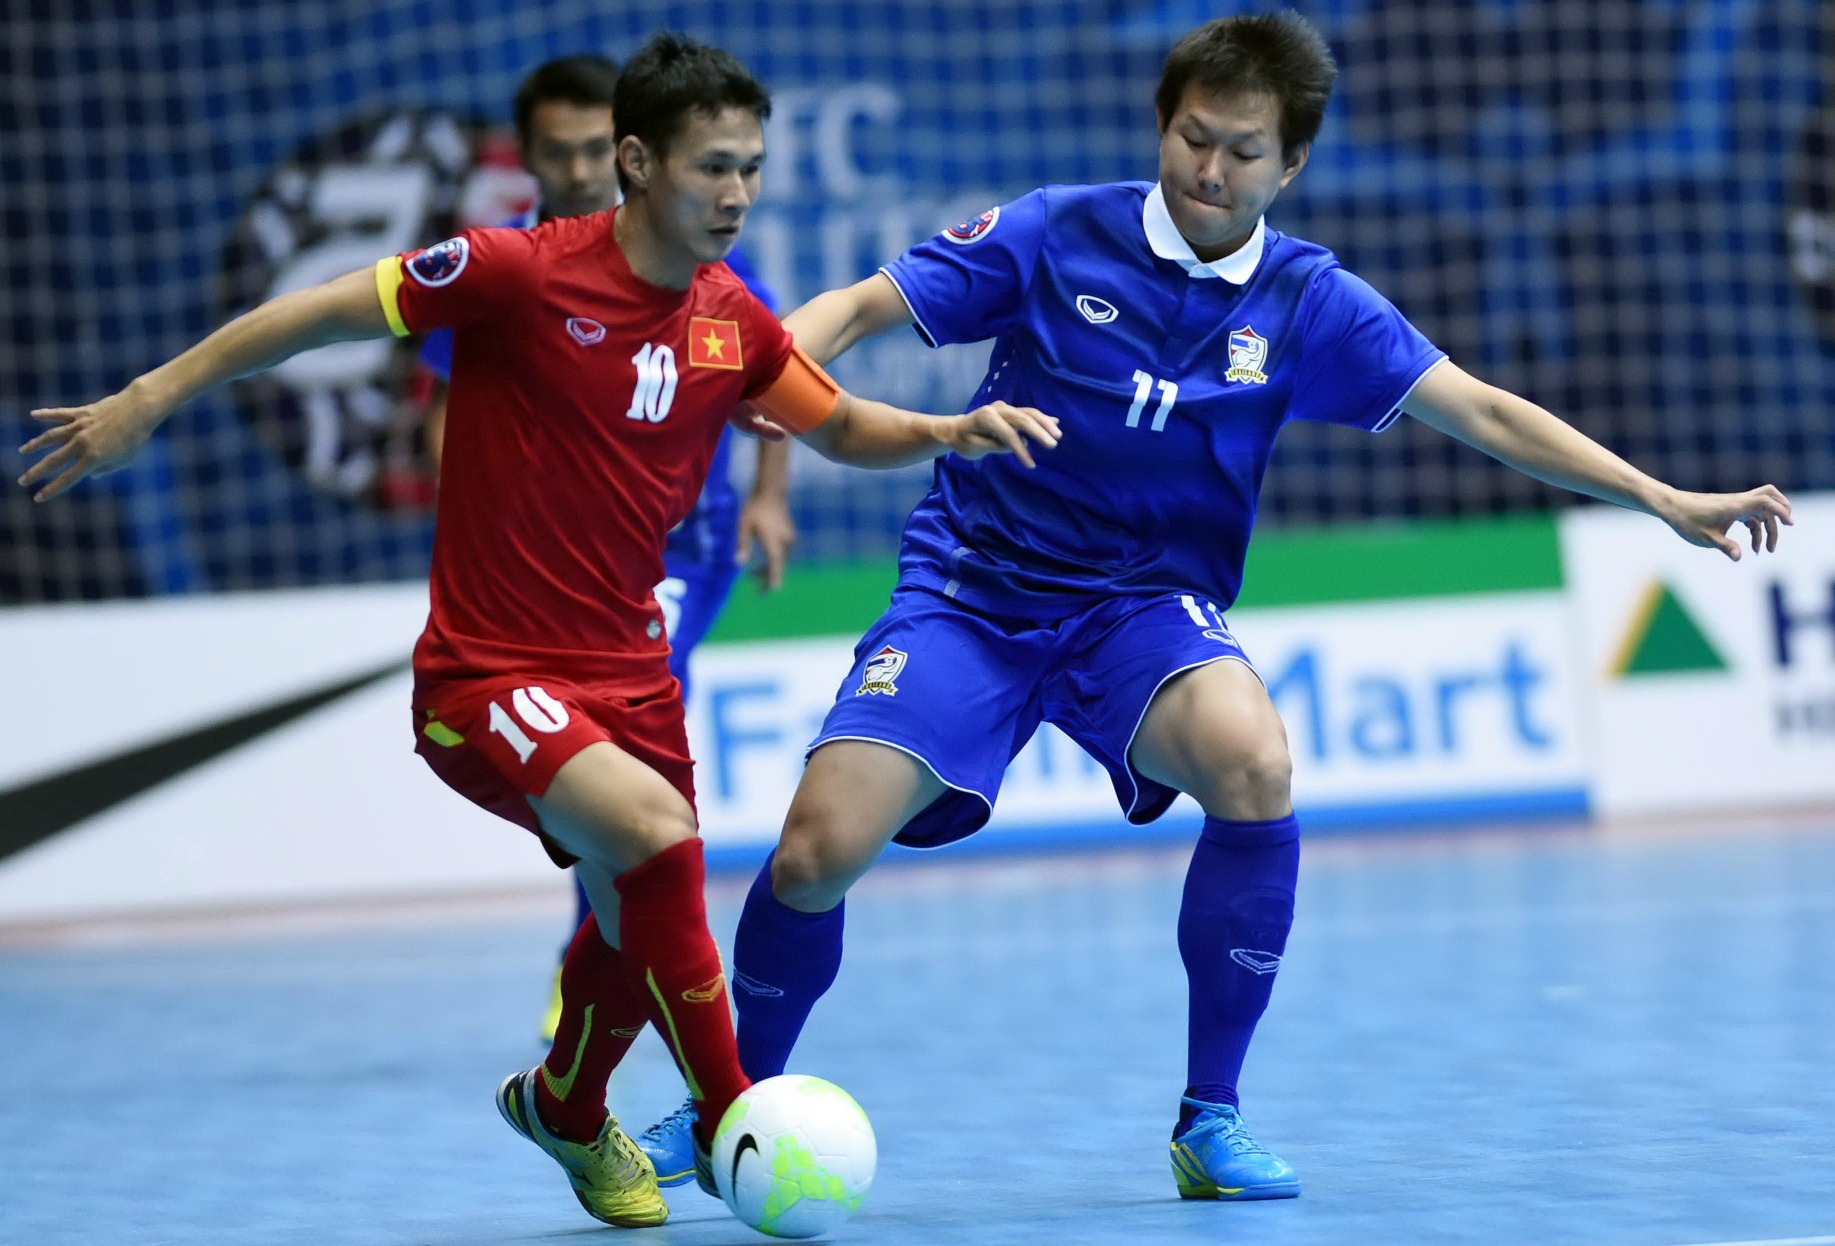 Vietnam finishes fourth at AFC Futsal Championship after play-off loss